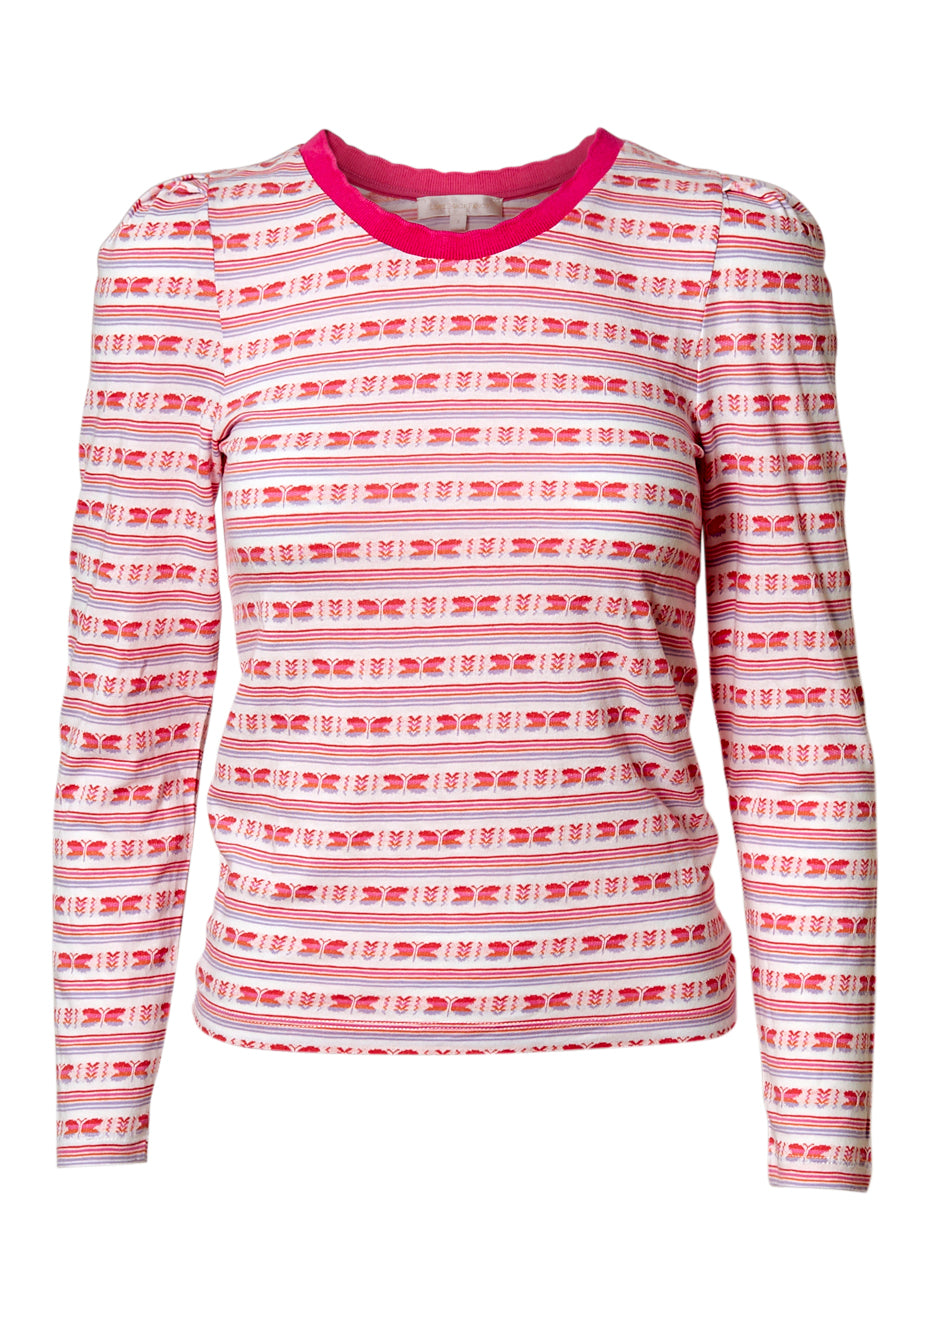 Lilette Rasberry Wine Top